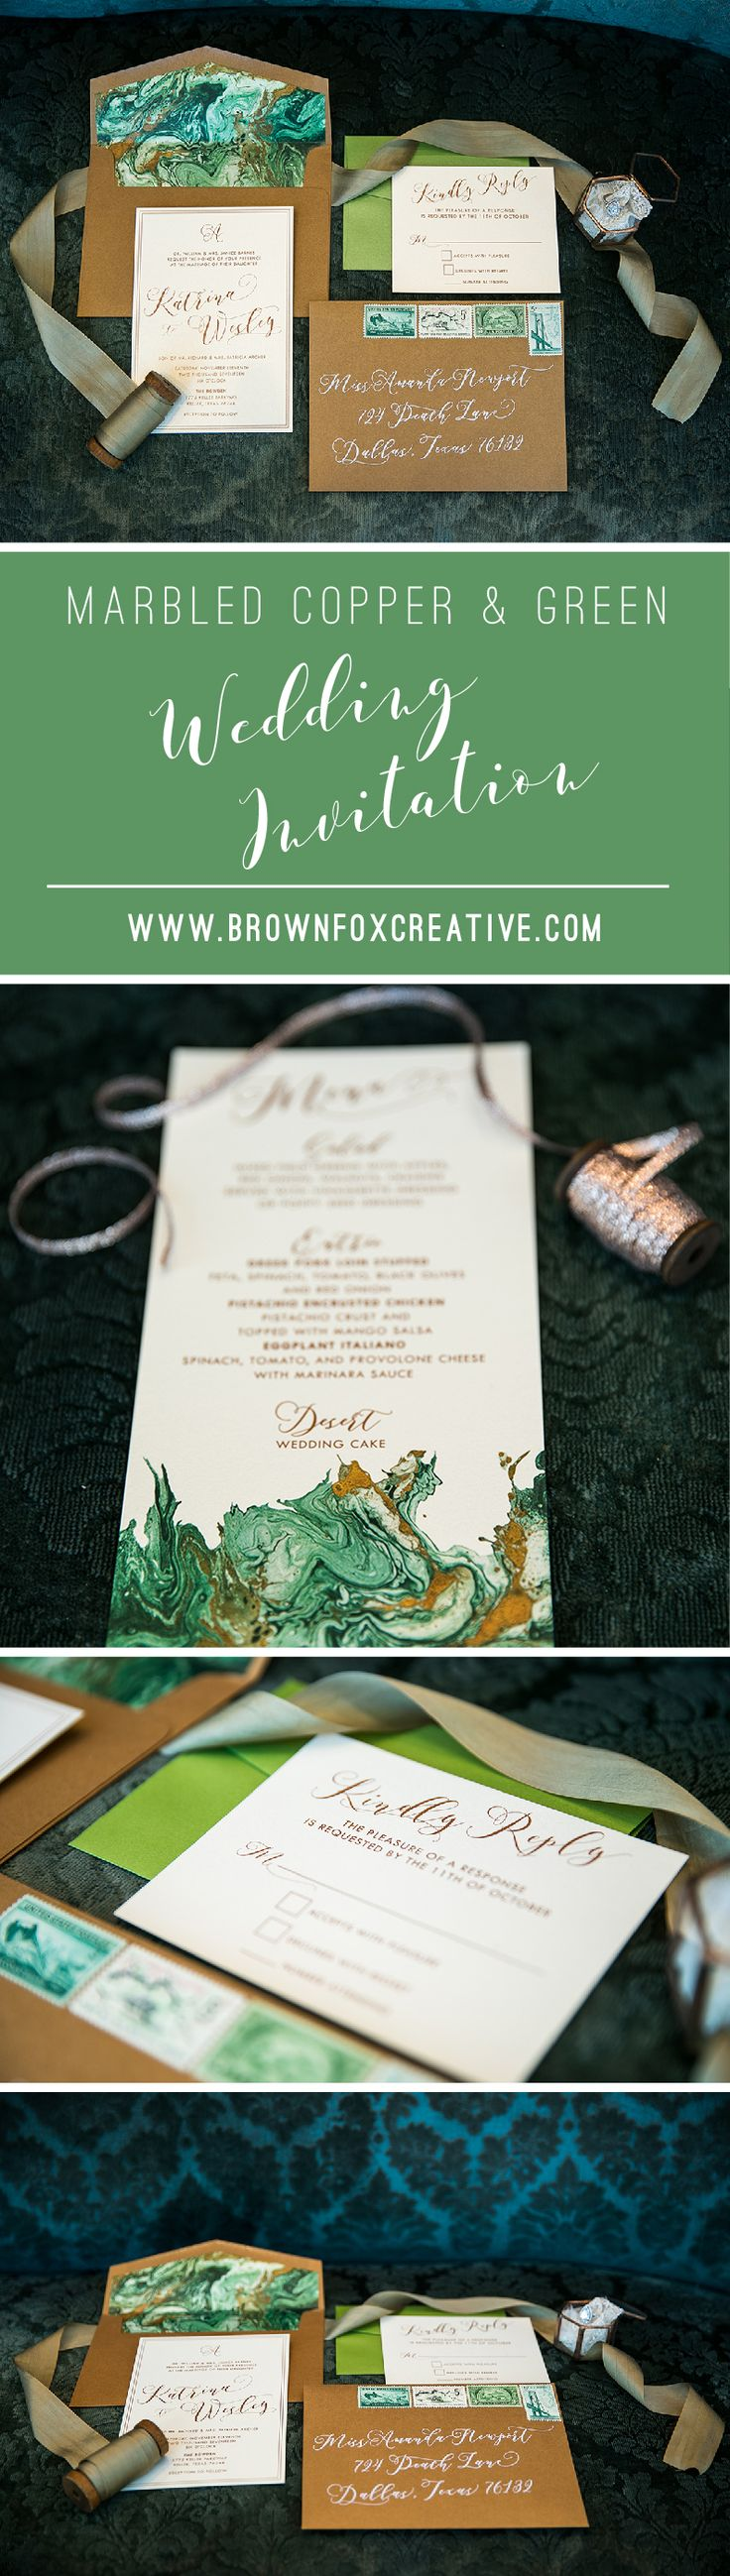 avery address labels wedding invitations%0A Shades of Green  u     Copper Marble  Rose Gold and Ivory Wedding Invitation  u      Includes Envelope Liner  RSVP and Address Printing